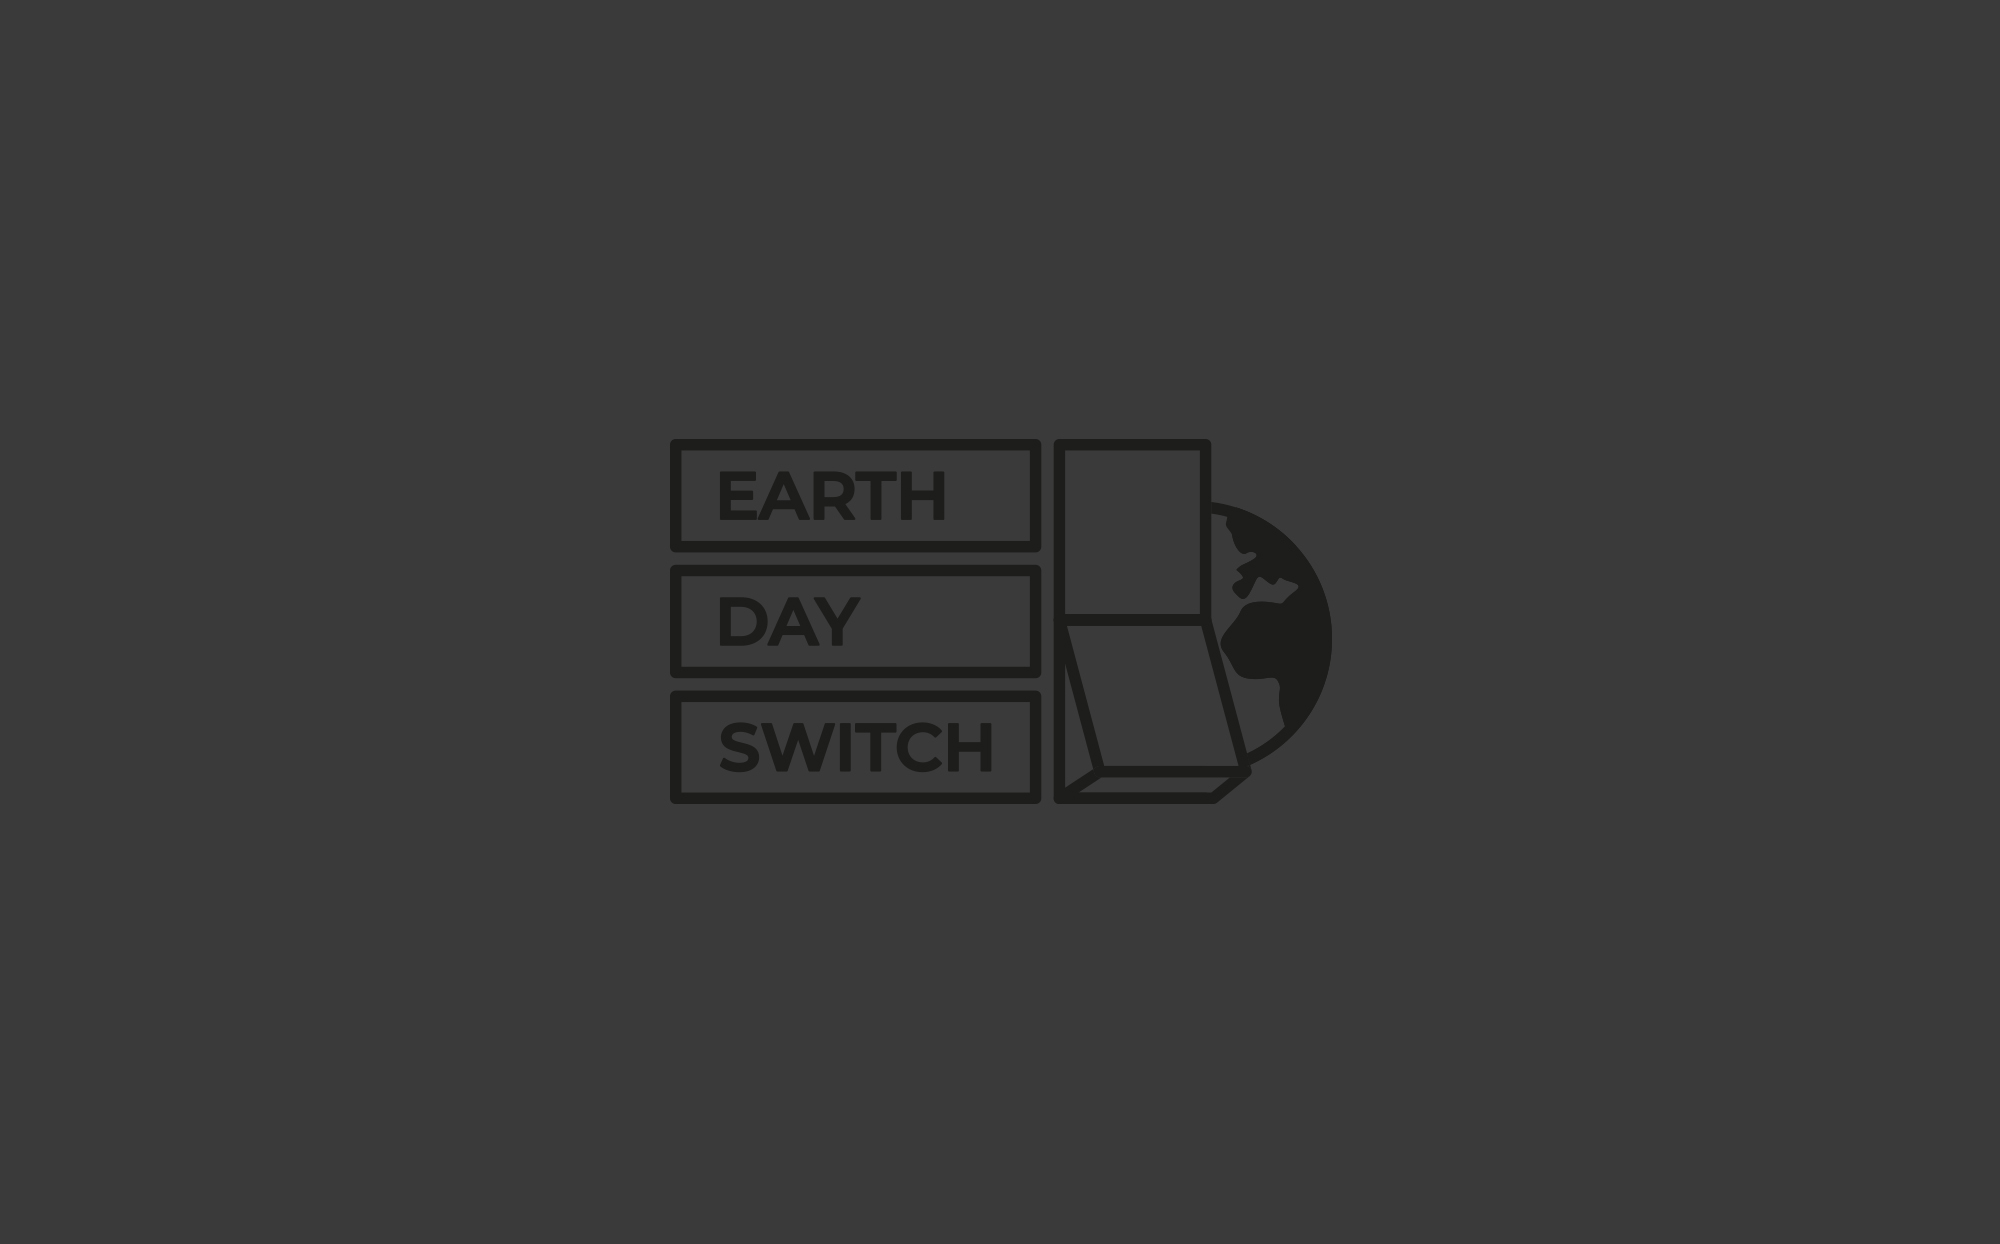 Earth Day Switch Logo (Switched Off)